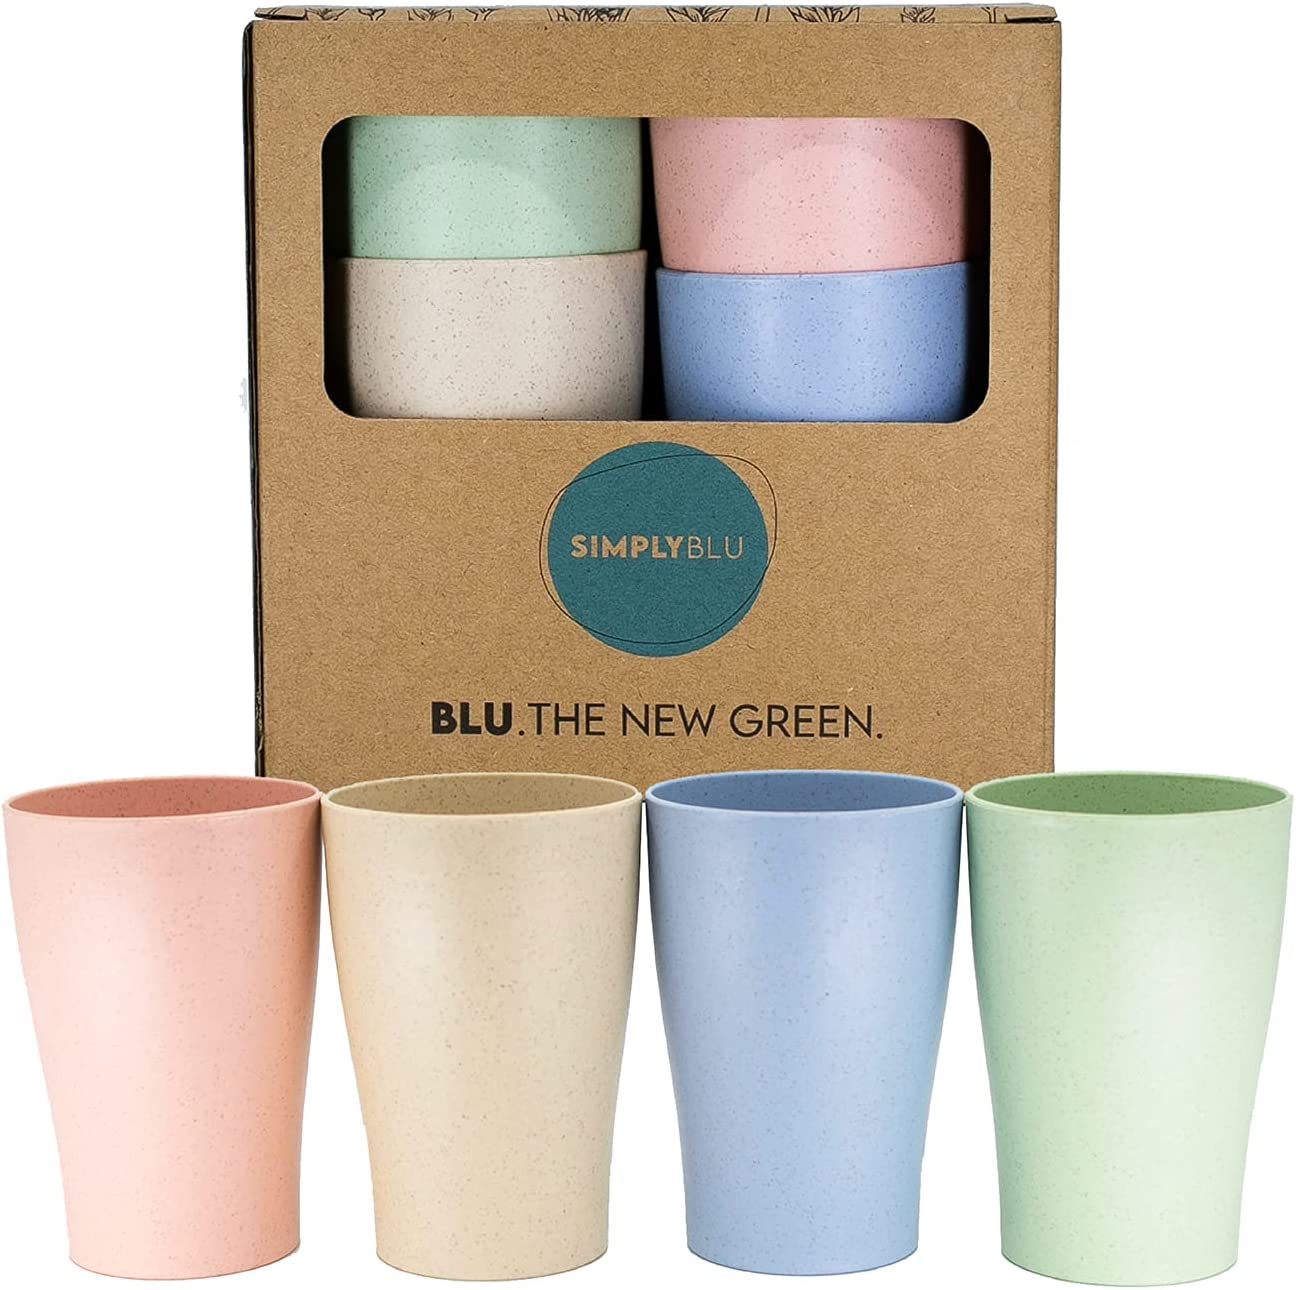 SimplyBLU Toddler Wheat Straw Cups – 8 oz Unbreakable Baby and Kids Drinking Cups for Milk, Juice, Water and Tea – Shatterproof, BPA-Free, Biodegradable and Eco-Friendly Tumbler Cups (Set of 4)